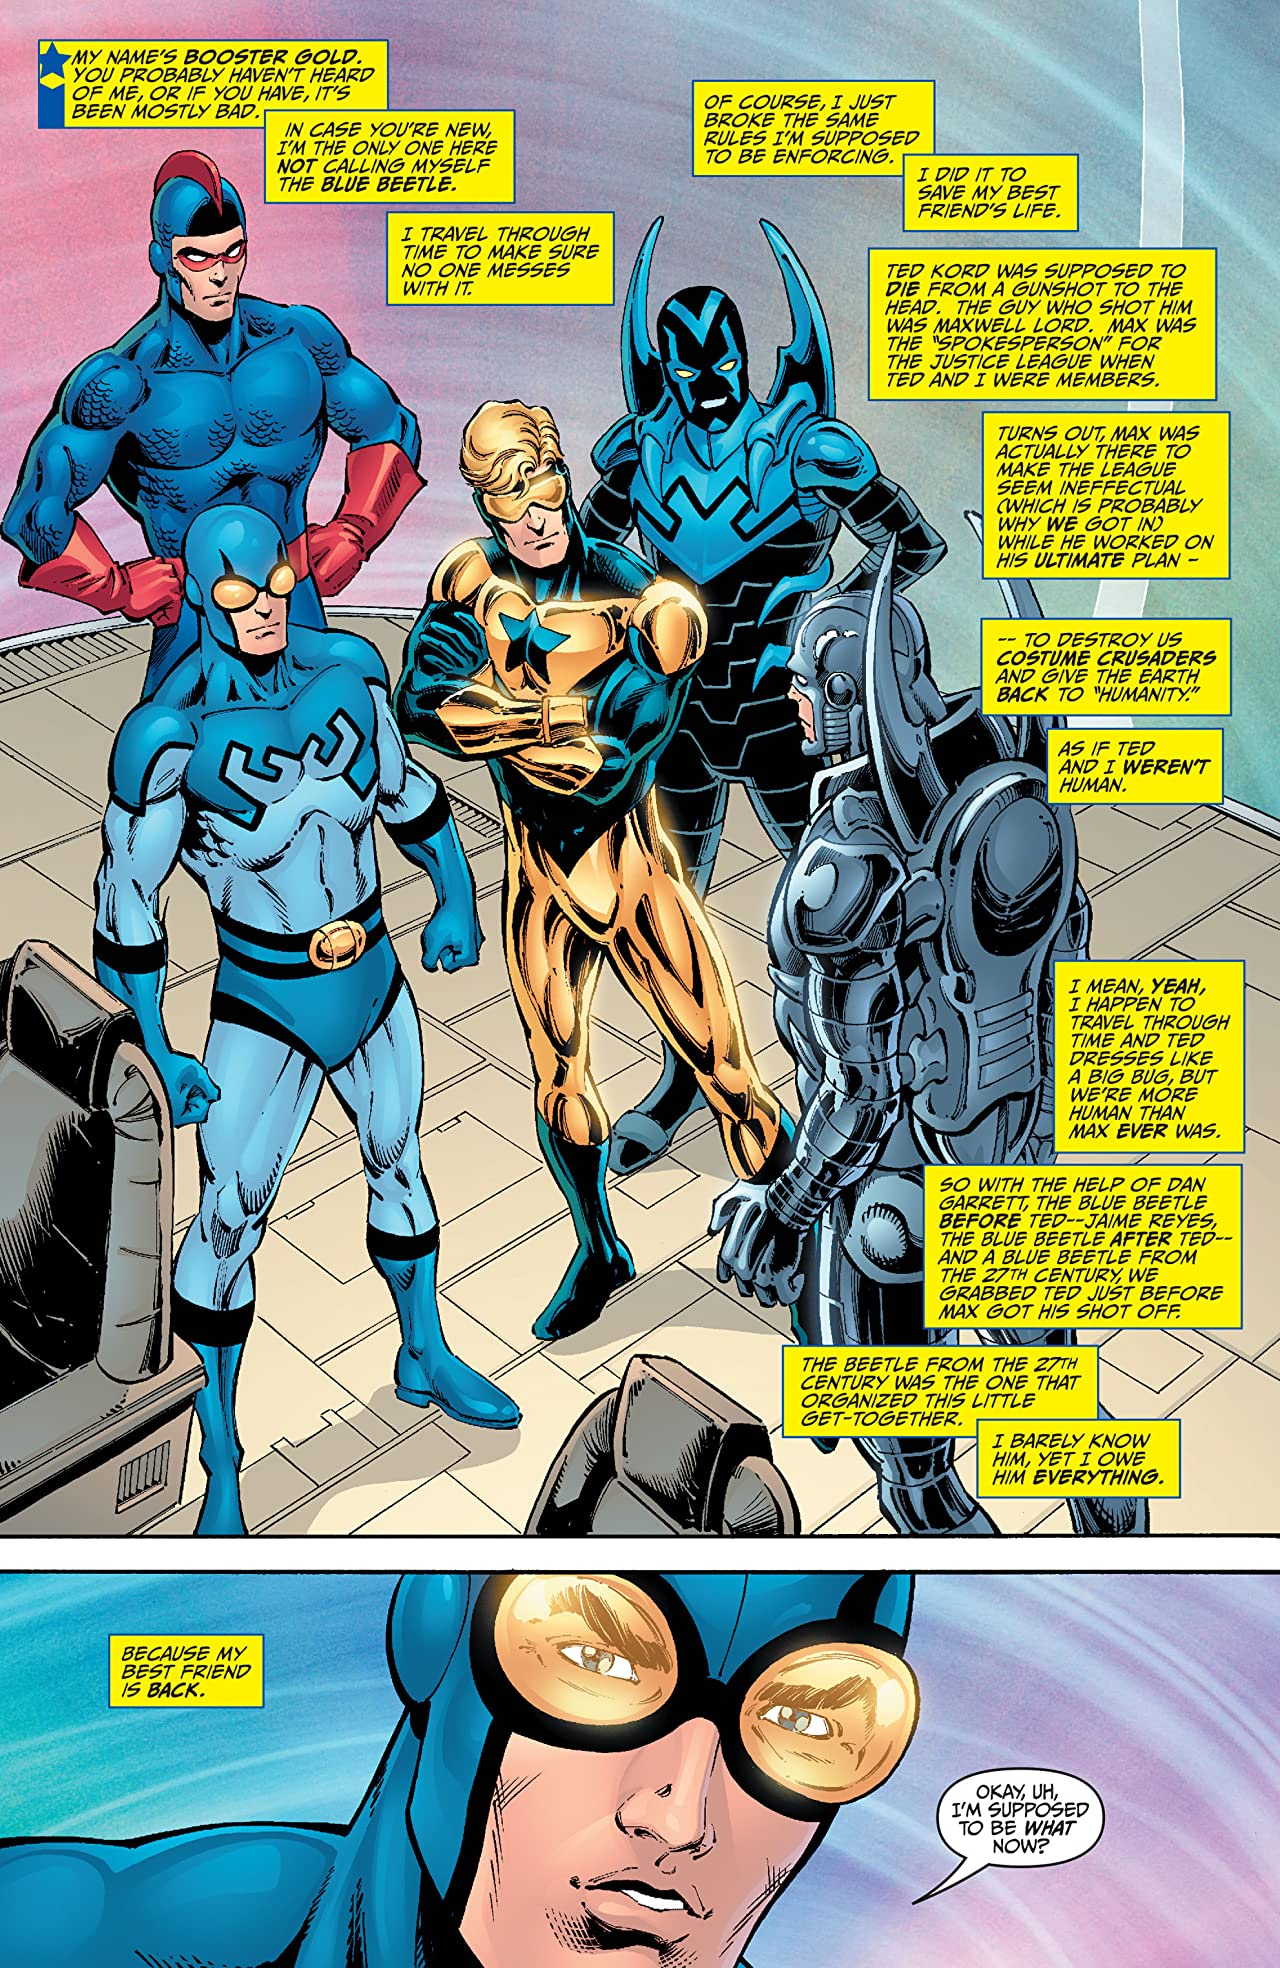 Booster Gold (2007-2011): Blue And Gold